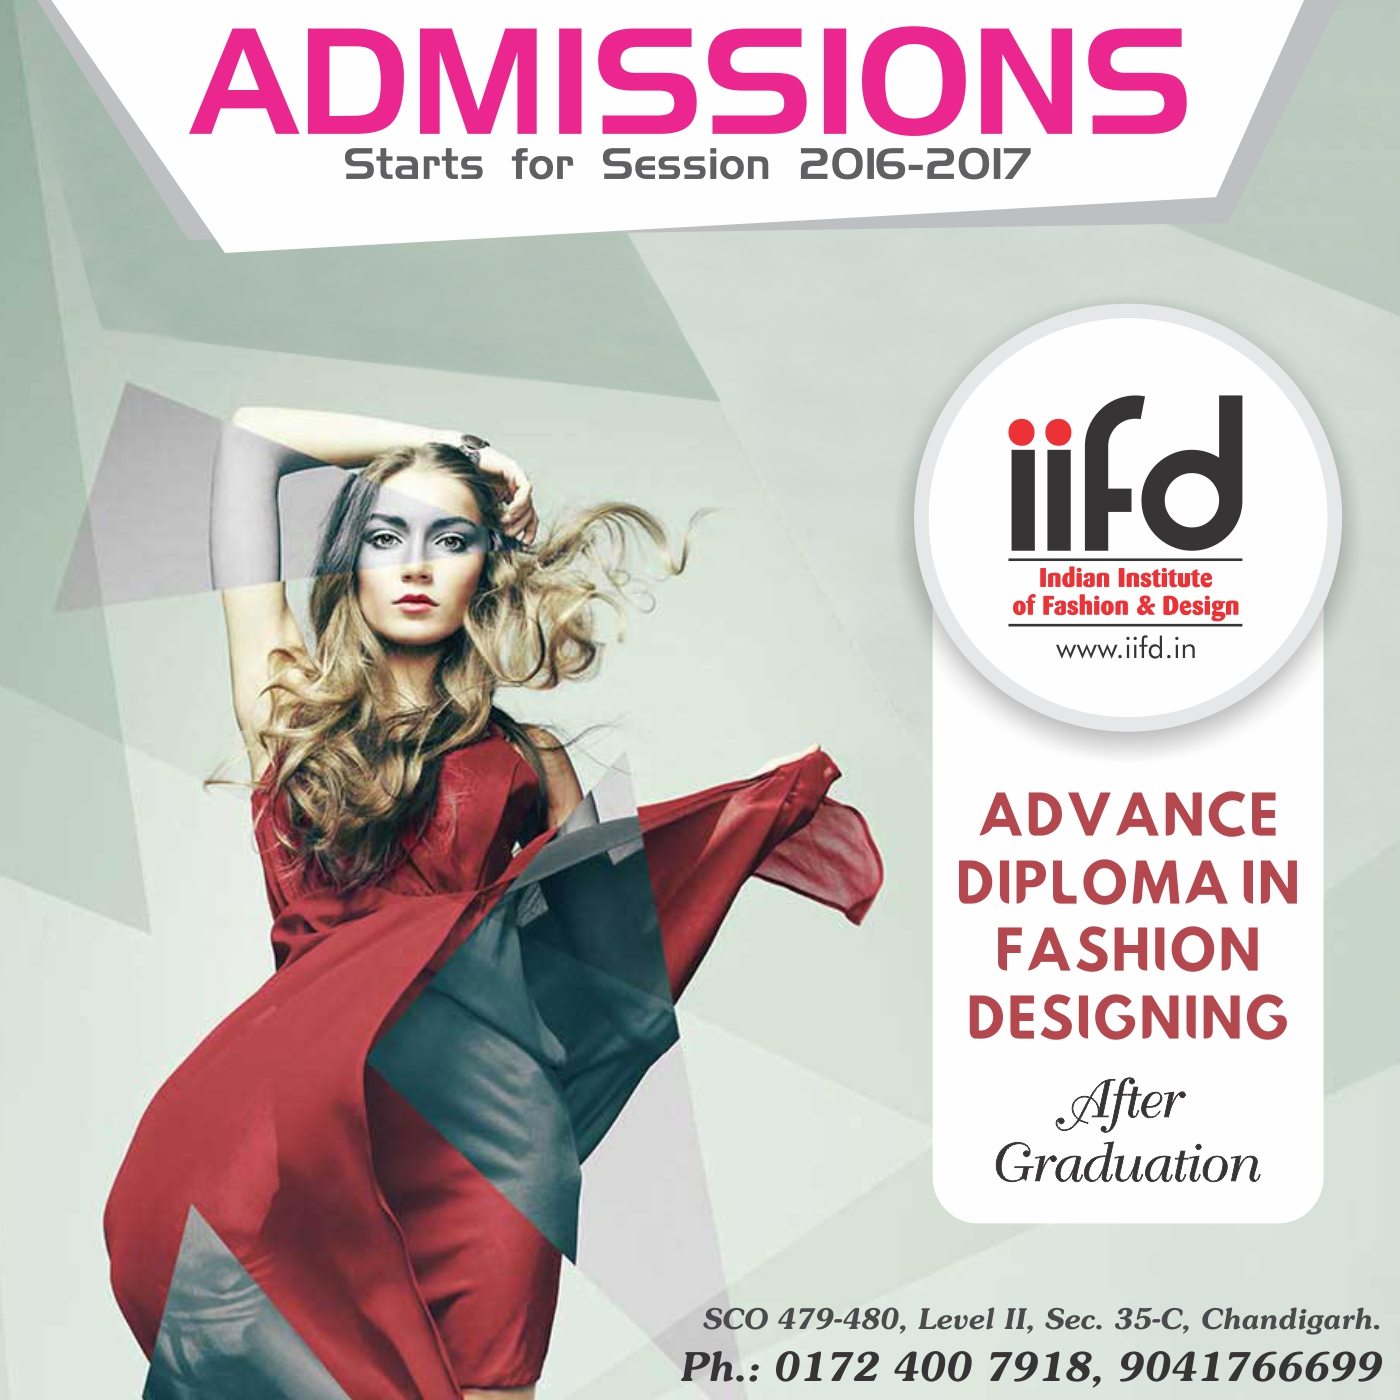 Iifd Best Fashion Designing Courses Institute In Chandigarh Punjab Why We Need Fashion Institute